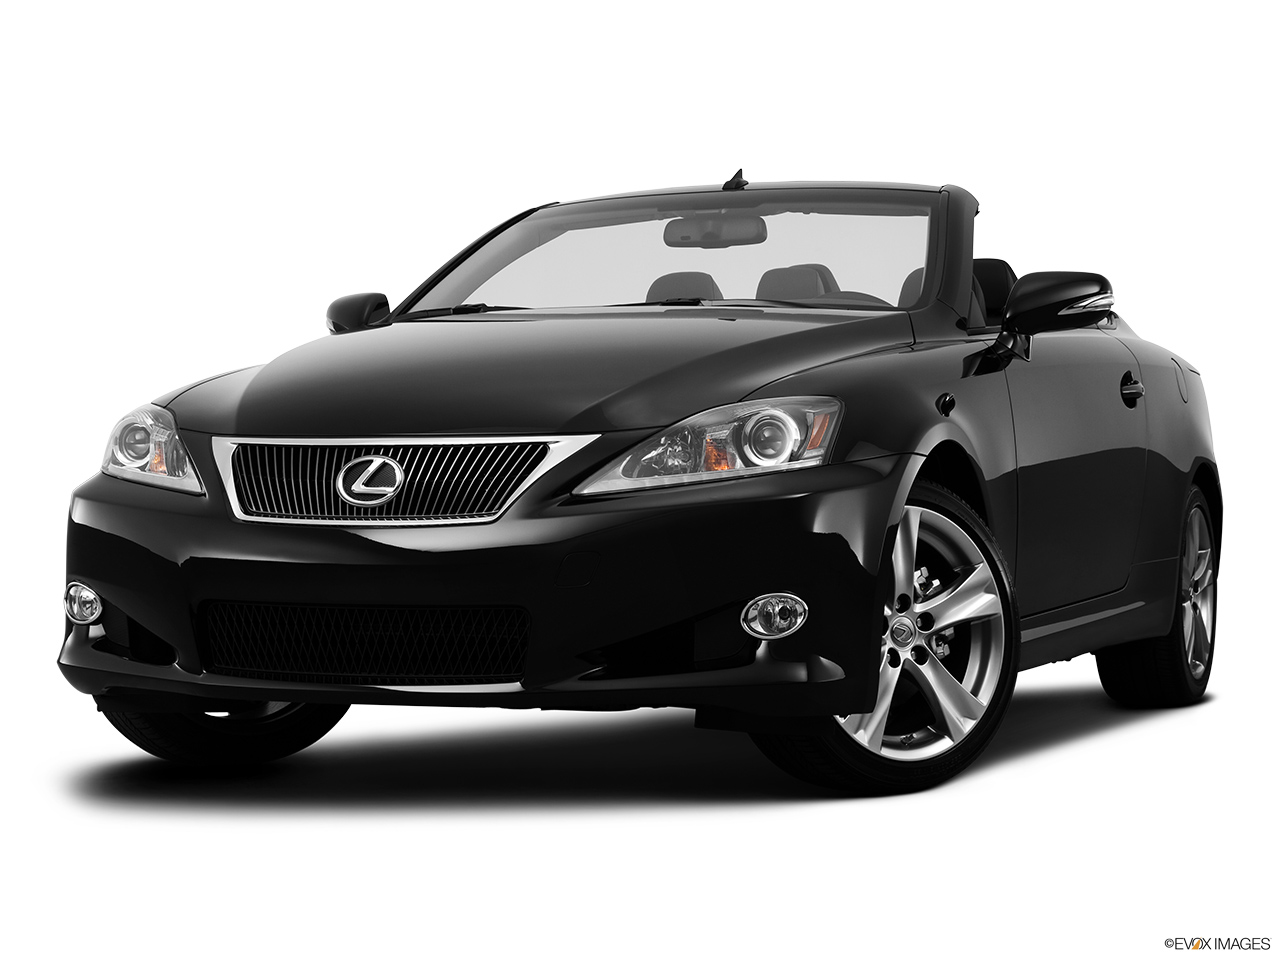 2013 Lexus IS 250C IS 250 C RWD Front angle view, low wide perspective.